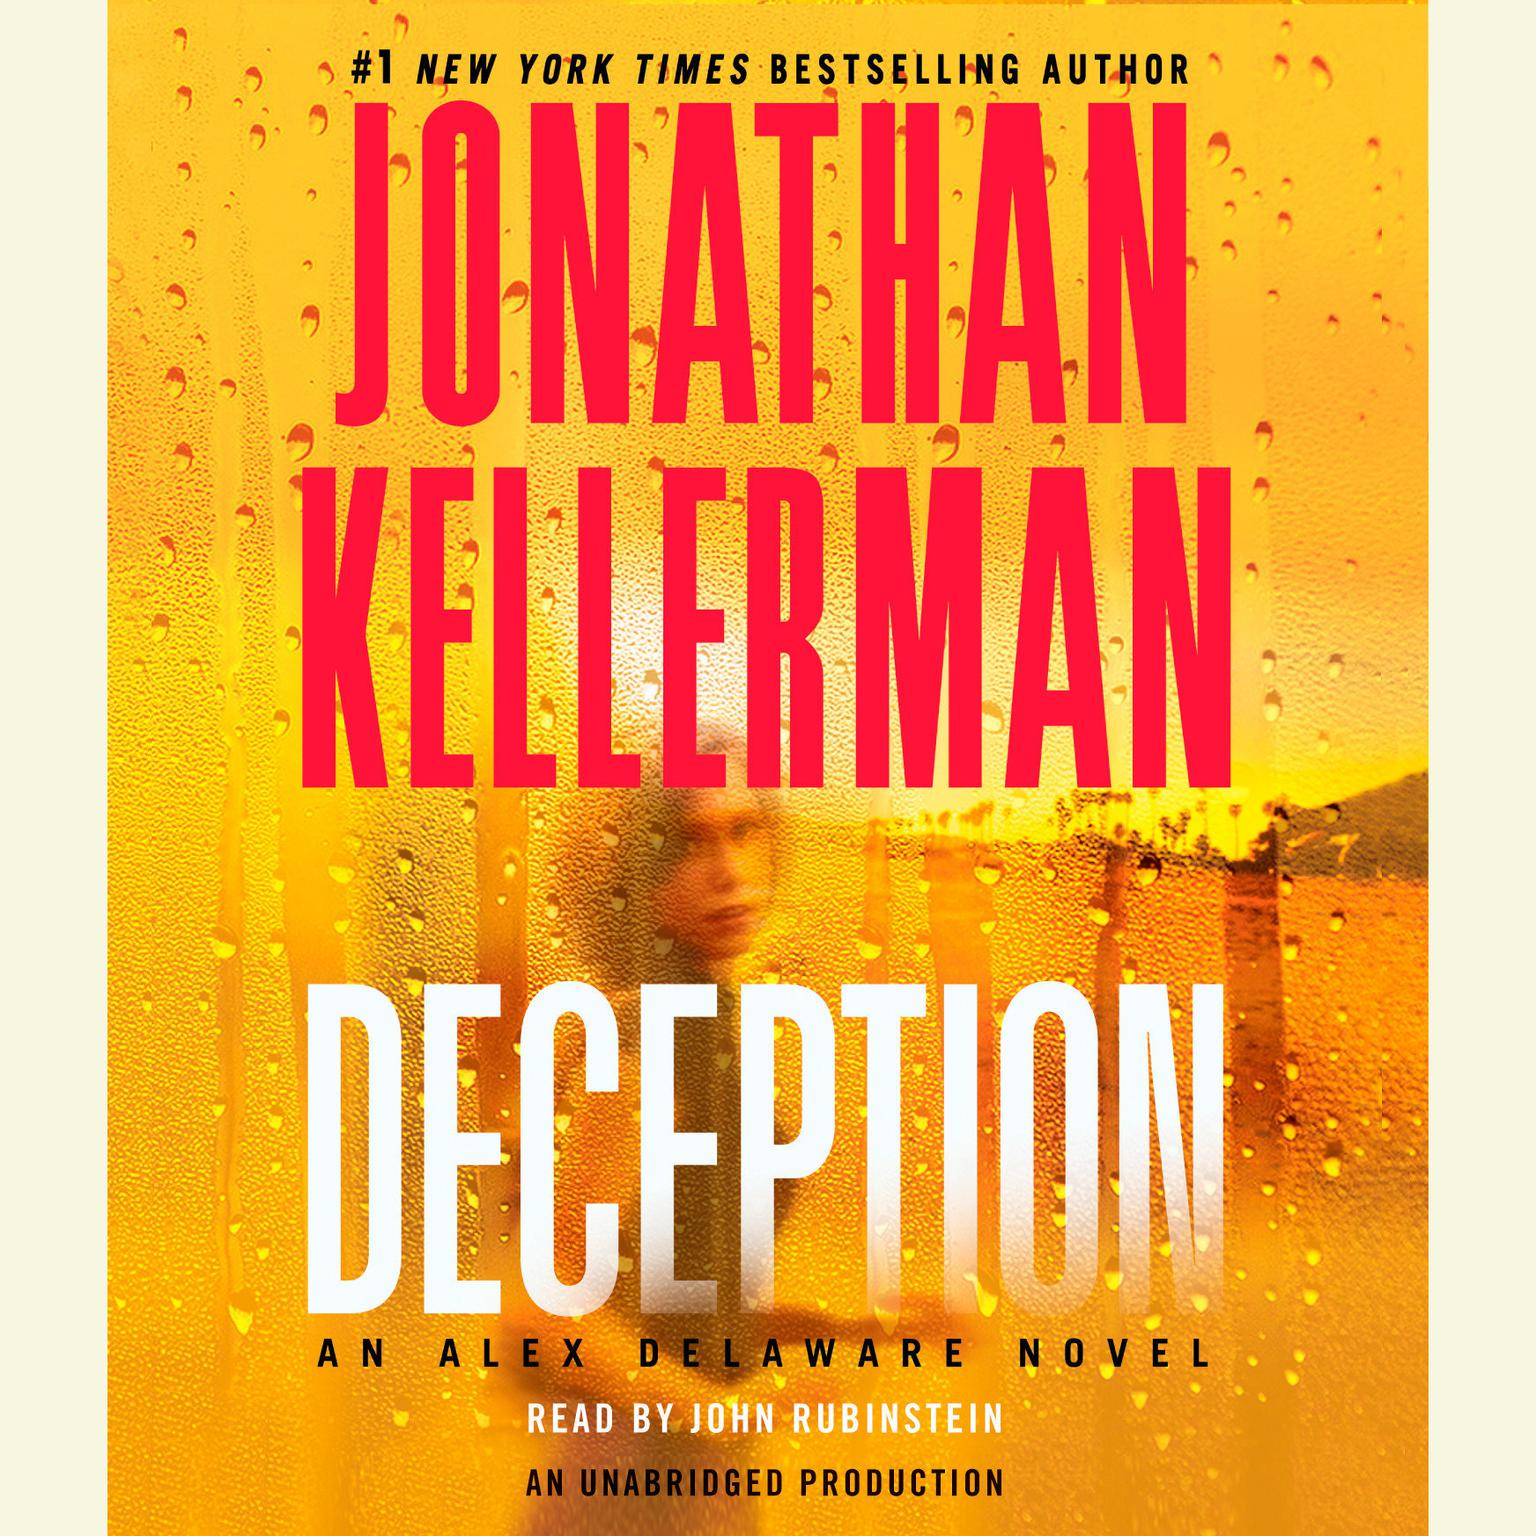 Printable Deception: An Alex Delaware Novel Audiobook Cover Art